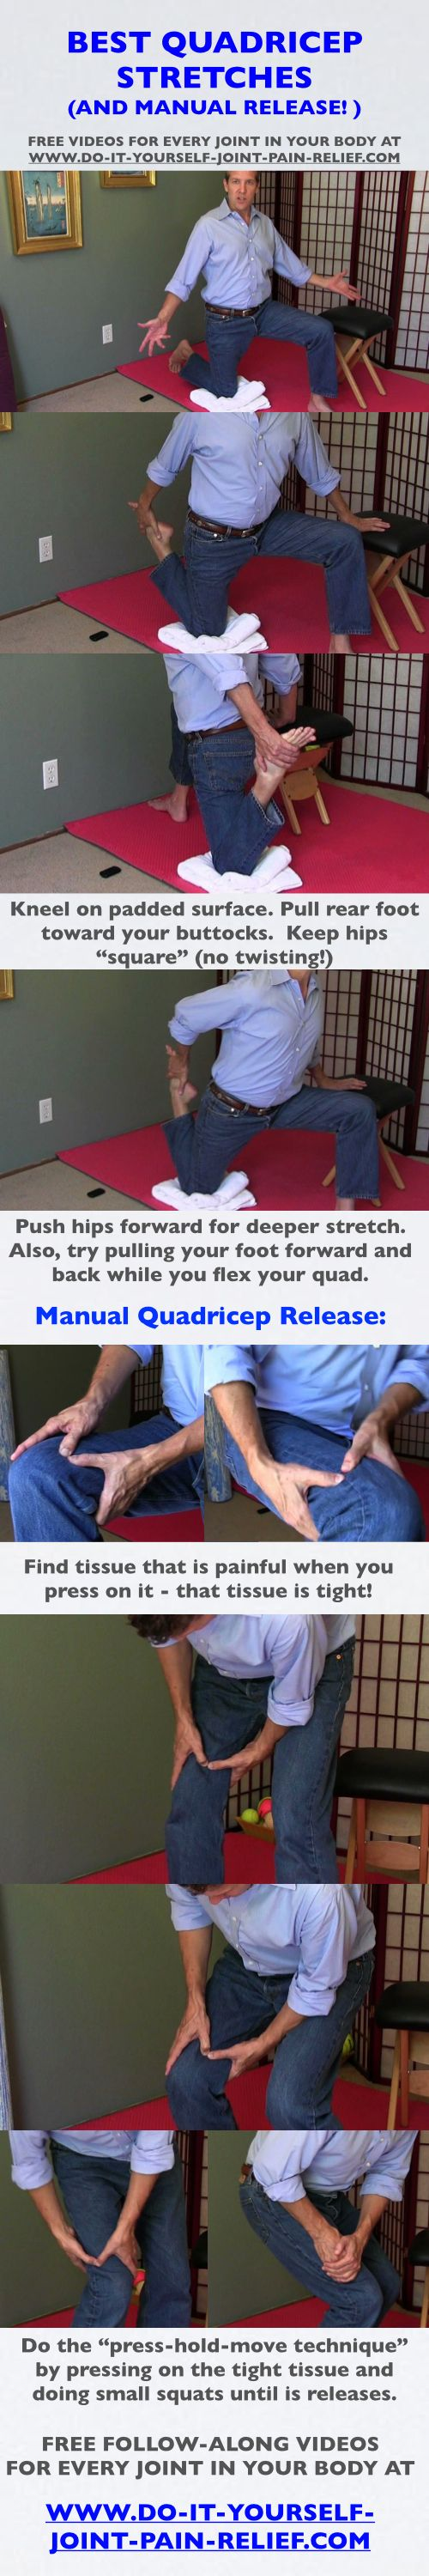 12 best diy joint pain relief images on pinterest massage best quadricep stretches solutioingenieria Choice Image